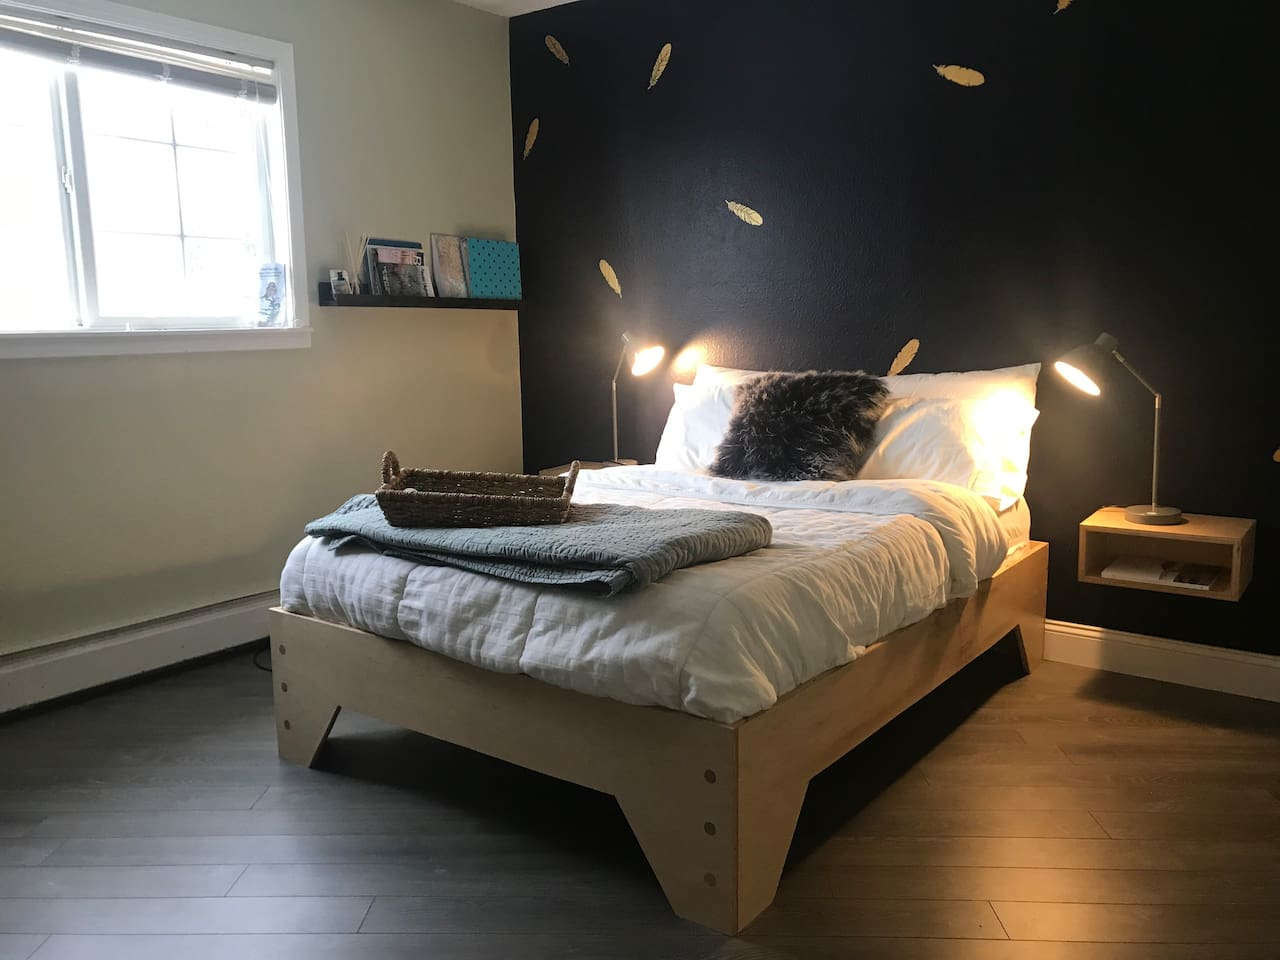 Enjoy a quiet night's rest on this hand-built bed with touch lights and a wooded backyard view.